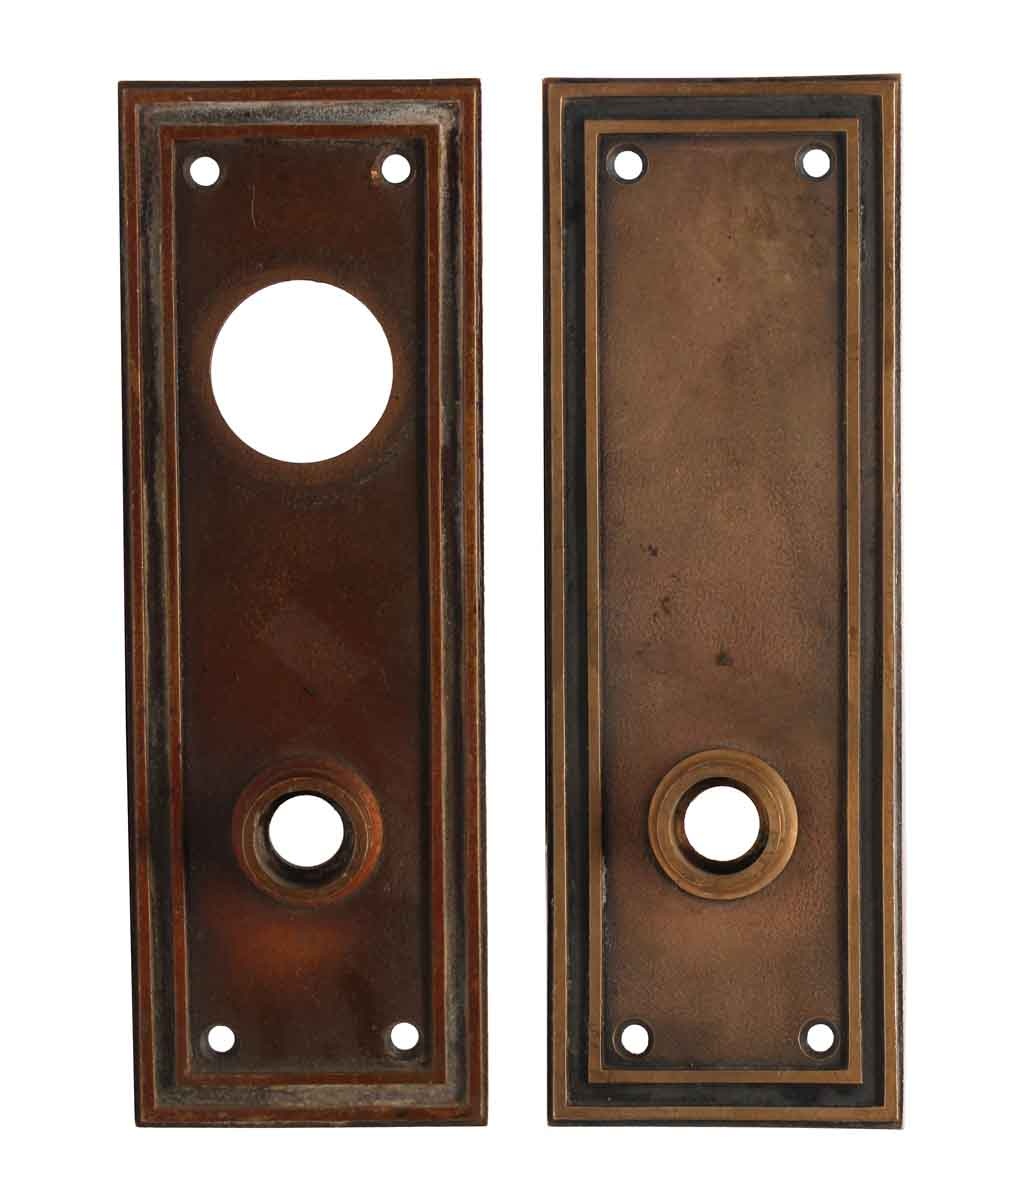 Back Plates - Pair of Antique Bronze Doric Entry Door Plates - Pair Of Antique Bronze Doric Entry Door Plates Olde Good Things